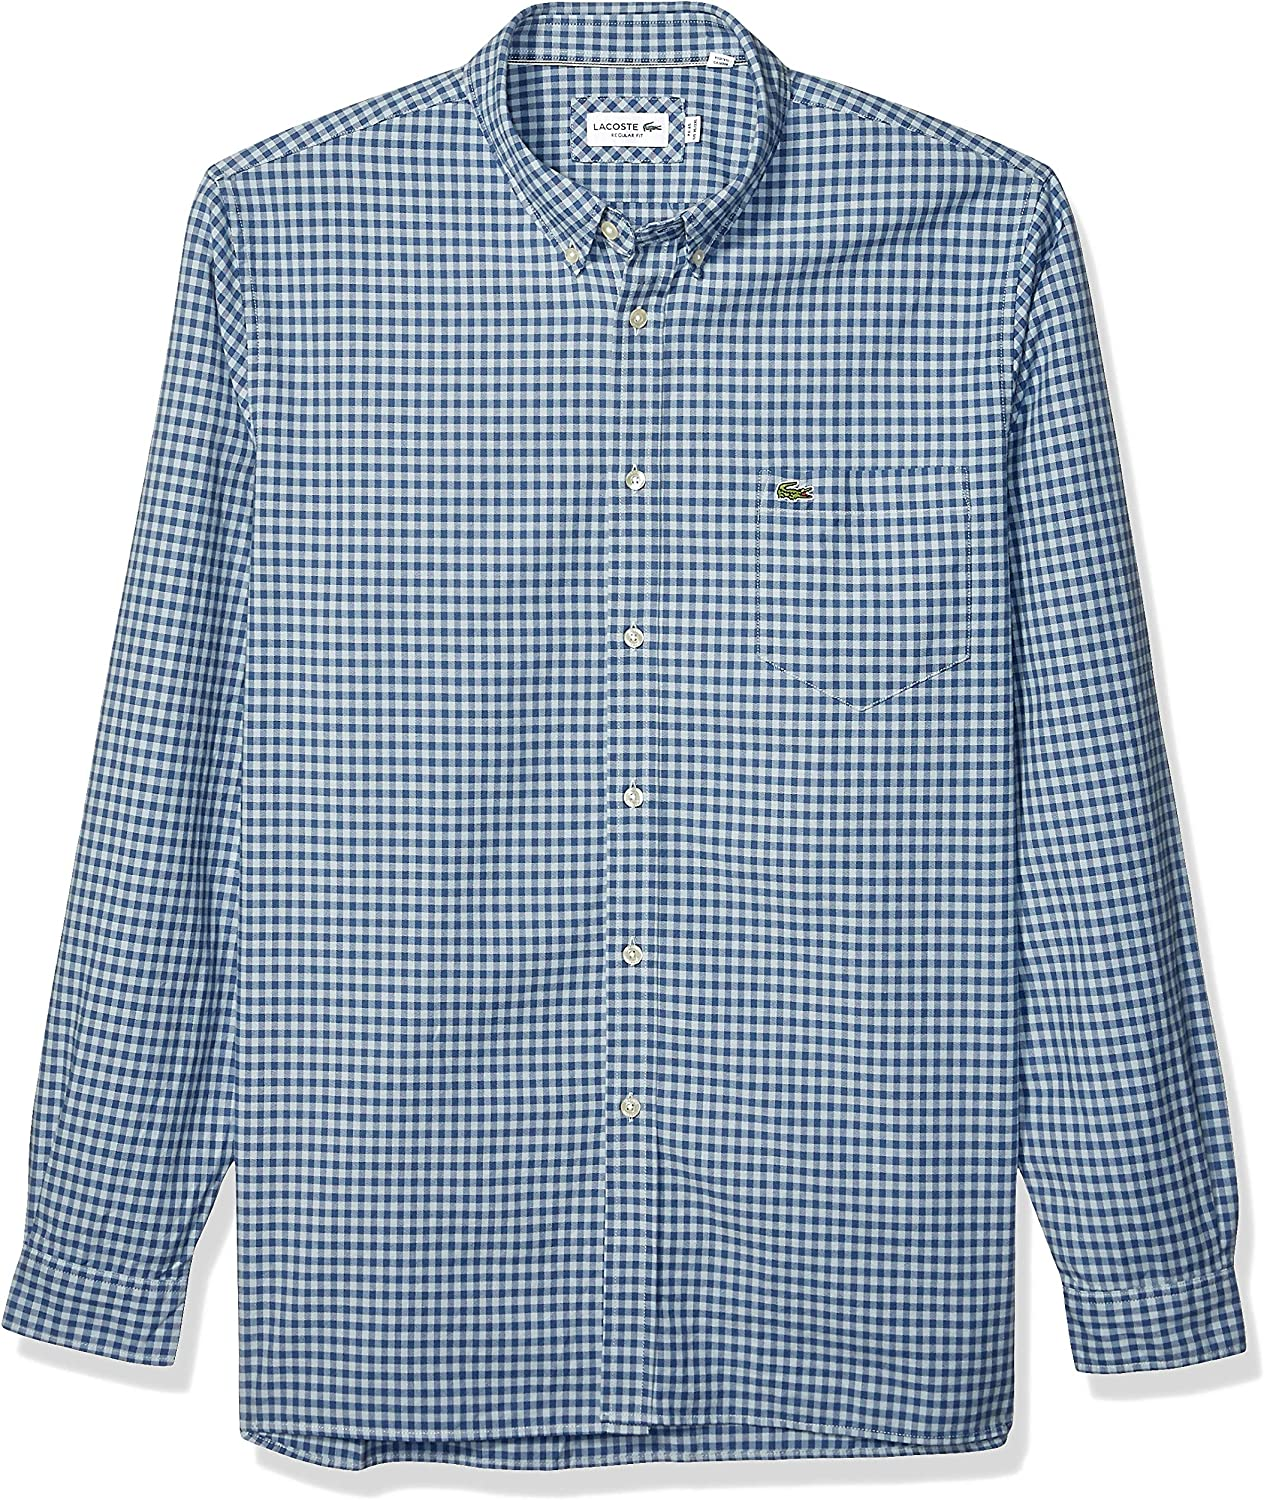 Howme Mens Classic-Fit Business Oxford Solid Long-Sleeve Woven Shirt